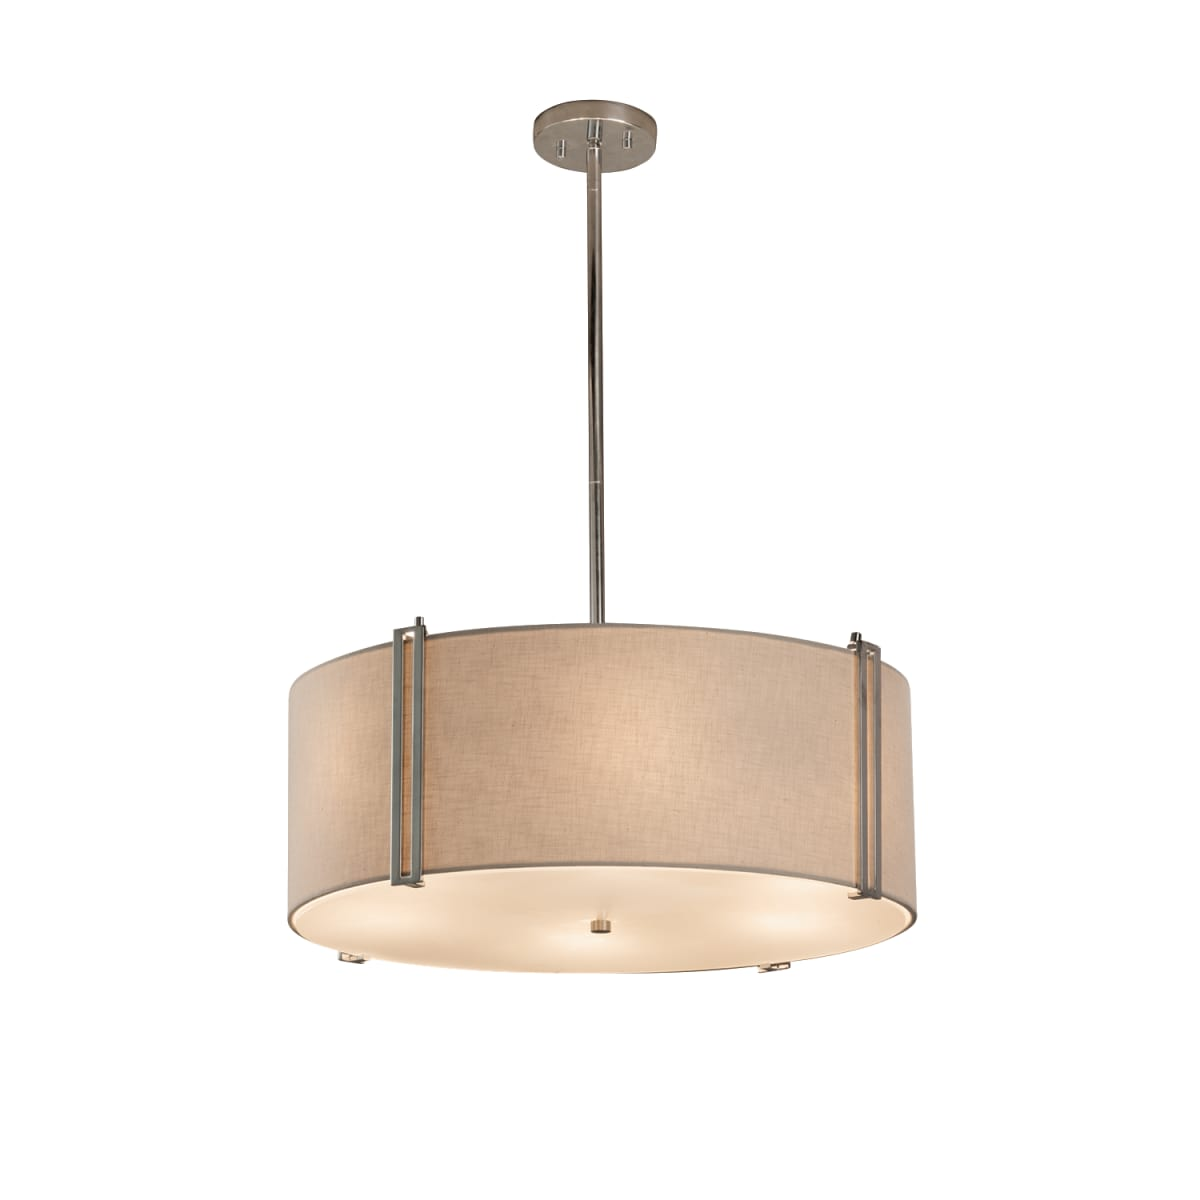 Justice Design Group Fab 9512 Whte Led6 4200